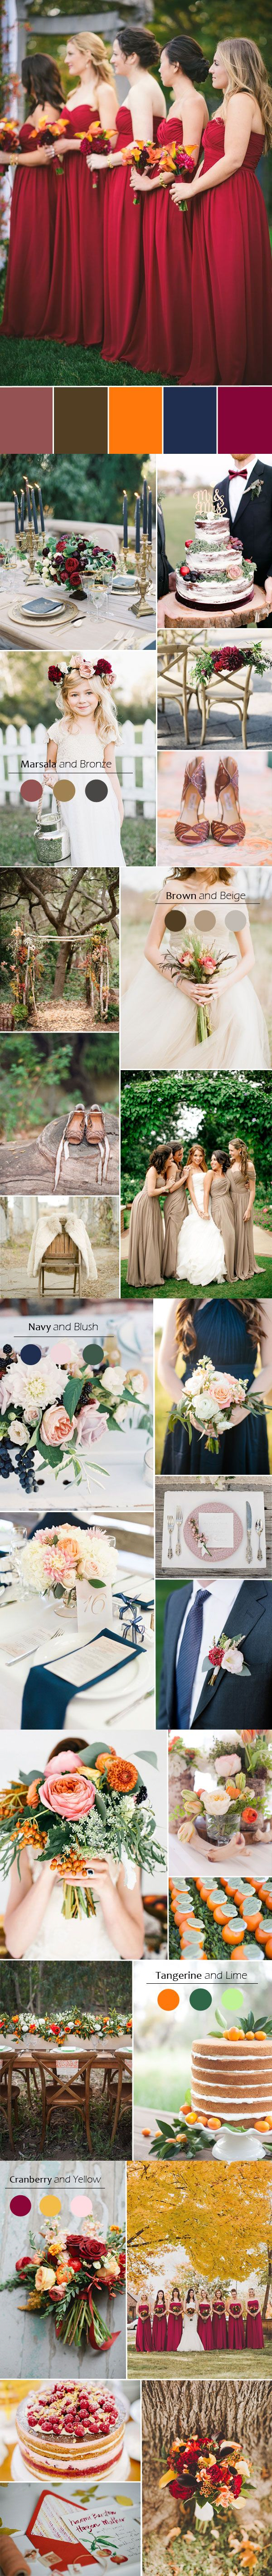 top 5 fall wedding color ideas and bridesmaid dress trends for season 2015